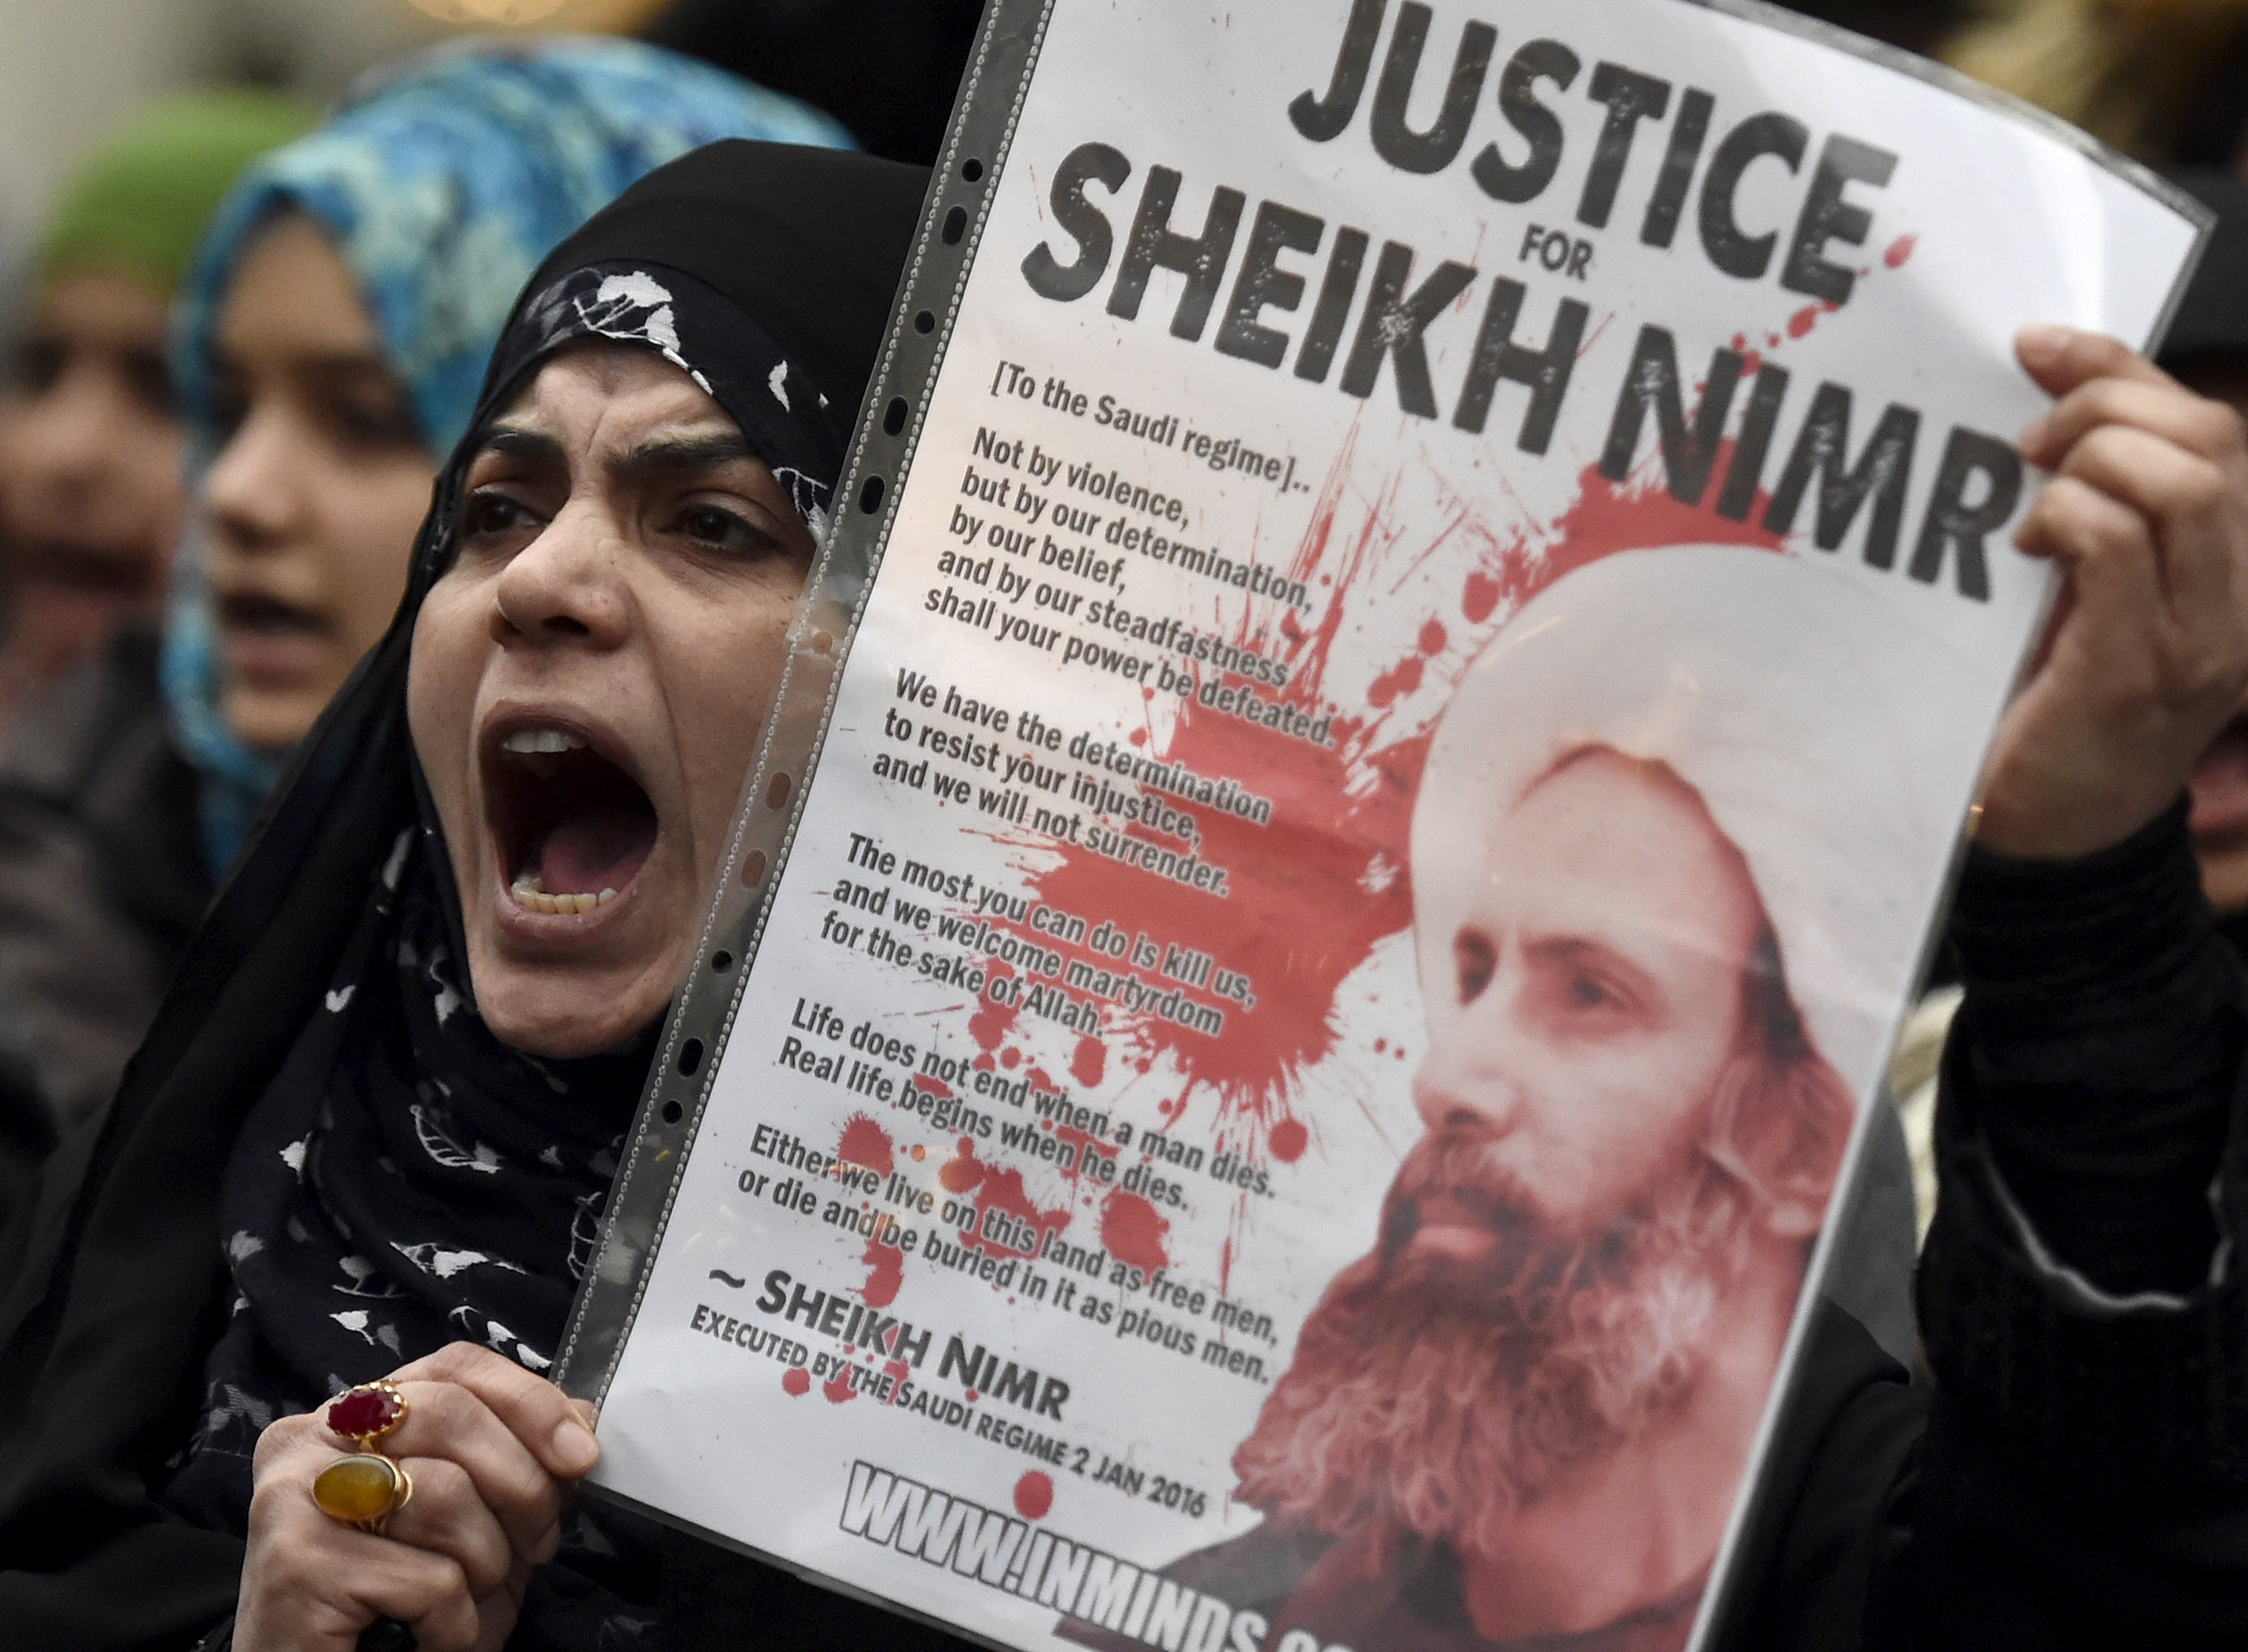 Tension Rises in the Middle East as Saudi Arabia Cuts Diplomatic Ties with Iran